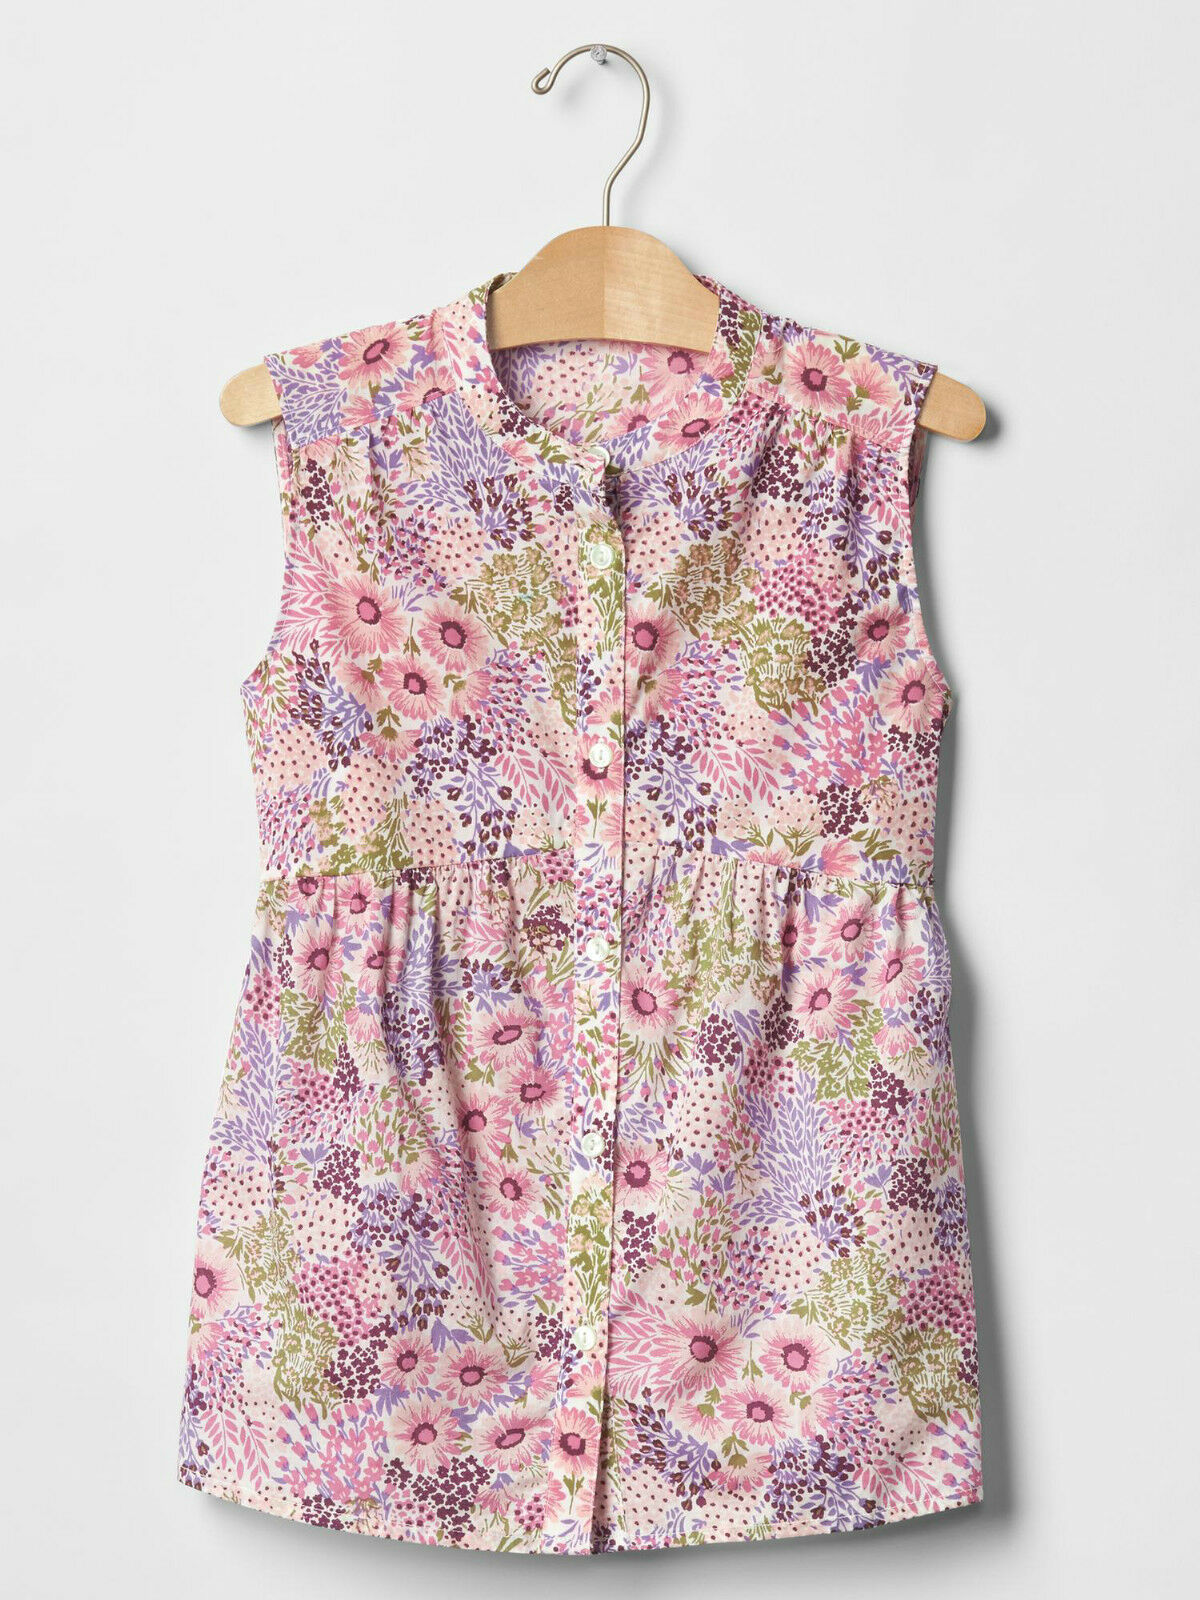 Primary image for GAP Kids Girls Blouse Top 10 Pink Purple Floral Sleeveless Shirred Cotton New